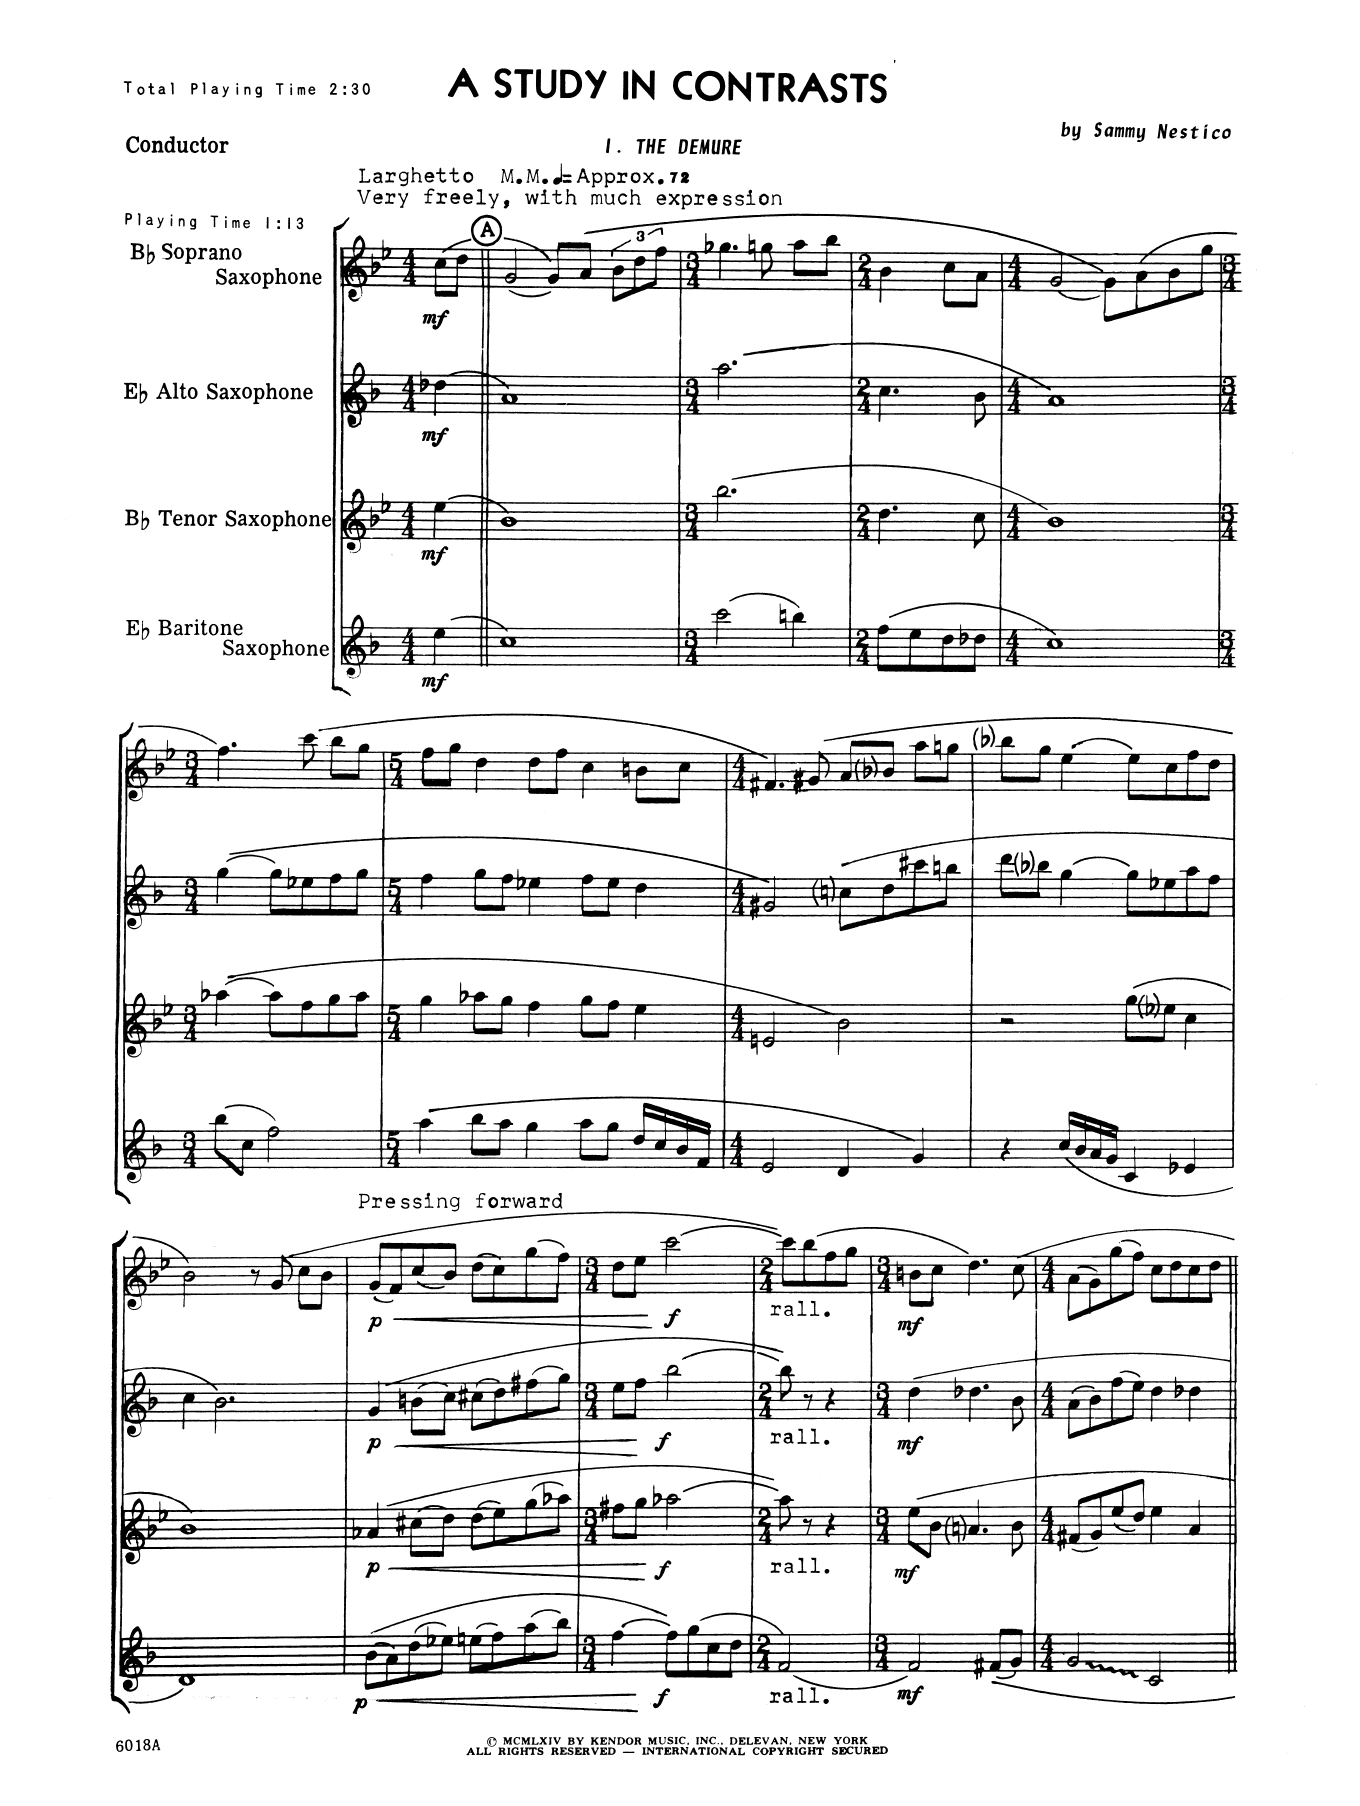 A Study In Contrasts (COMPLETE) sheet music for saxophone quartet by Sammy Nestico. Score Image Preview.